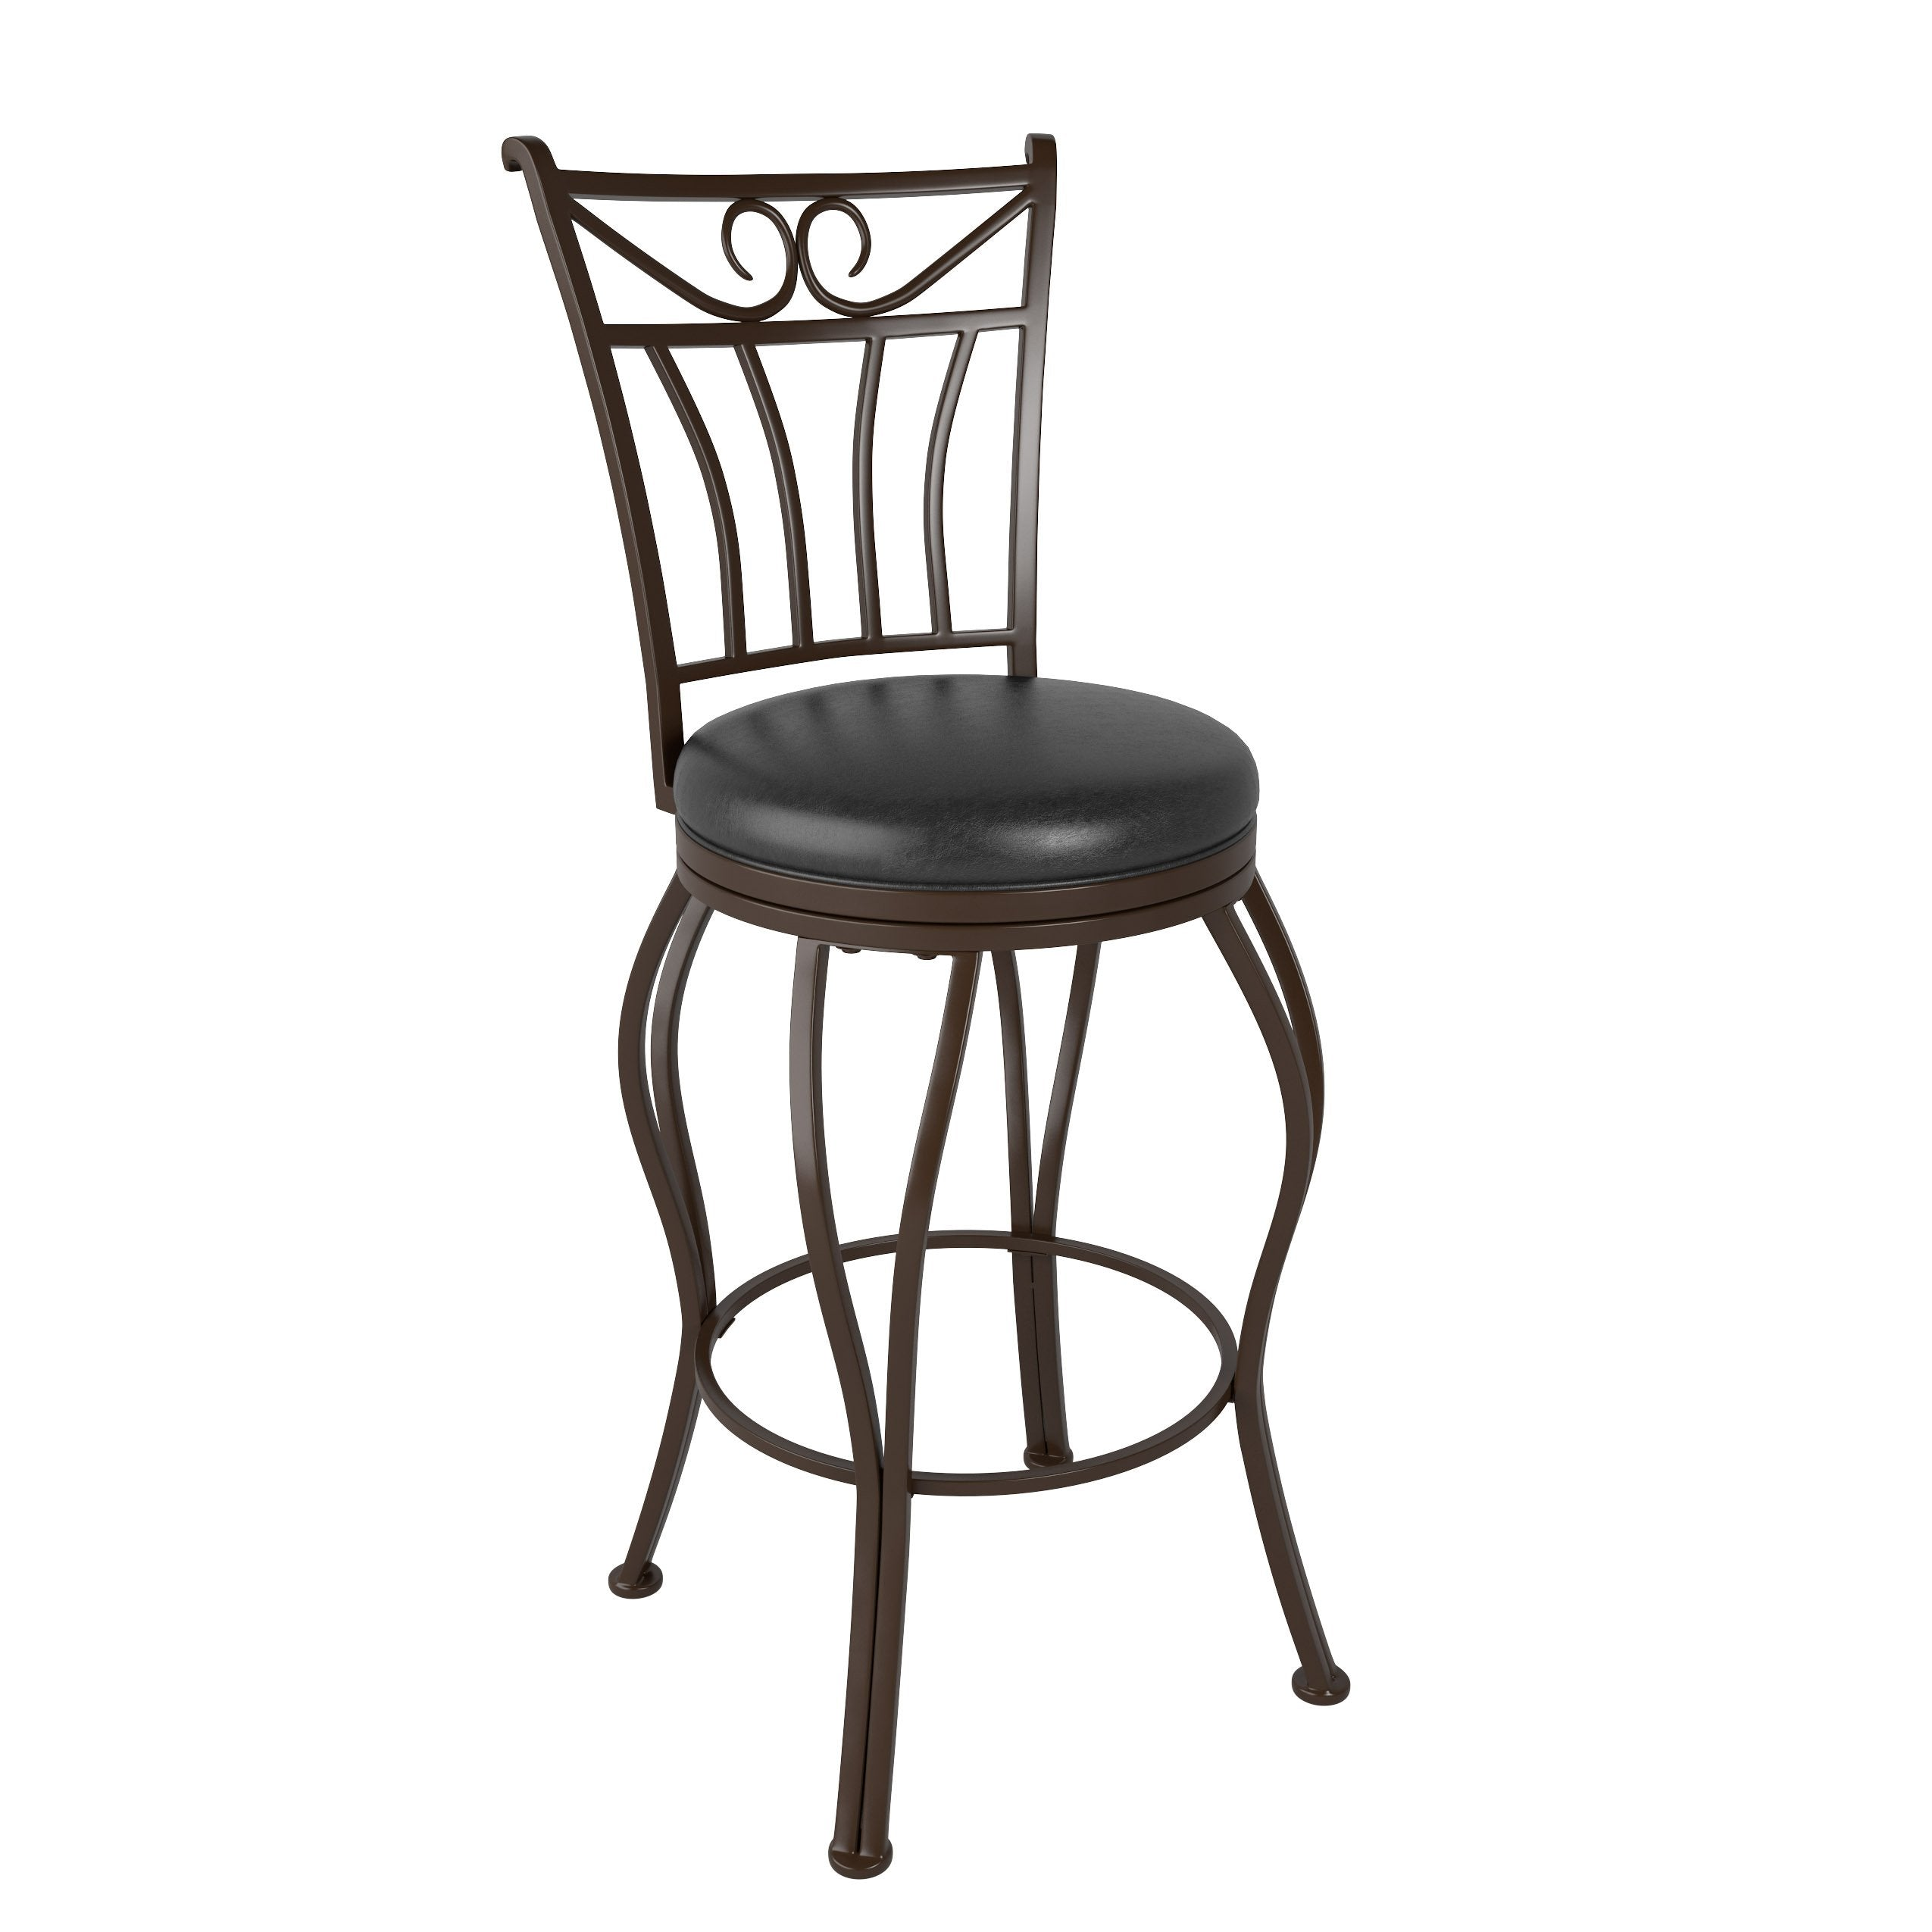 Outstanding Metal Counter Height Bar Stool With Swivel Glossy Dark Brown Leather Seat Clearance Theyellowbook Wood Chair Design Ideas Theyellowbookinfo